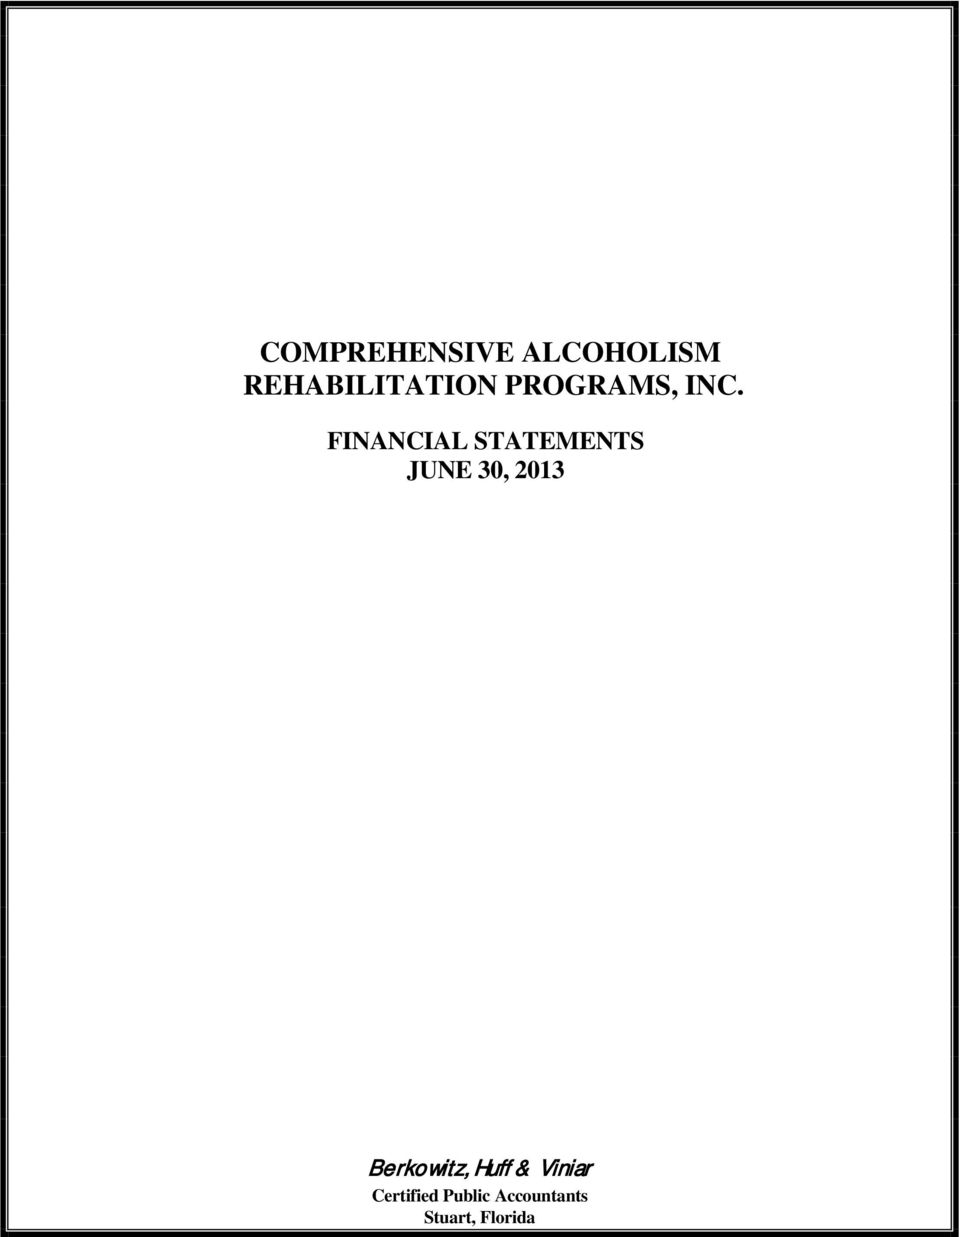 FINANCIAL STATEMENTS JUNE 30, 2013